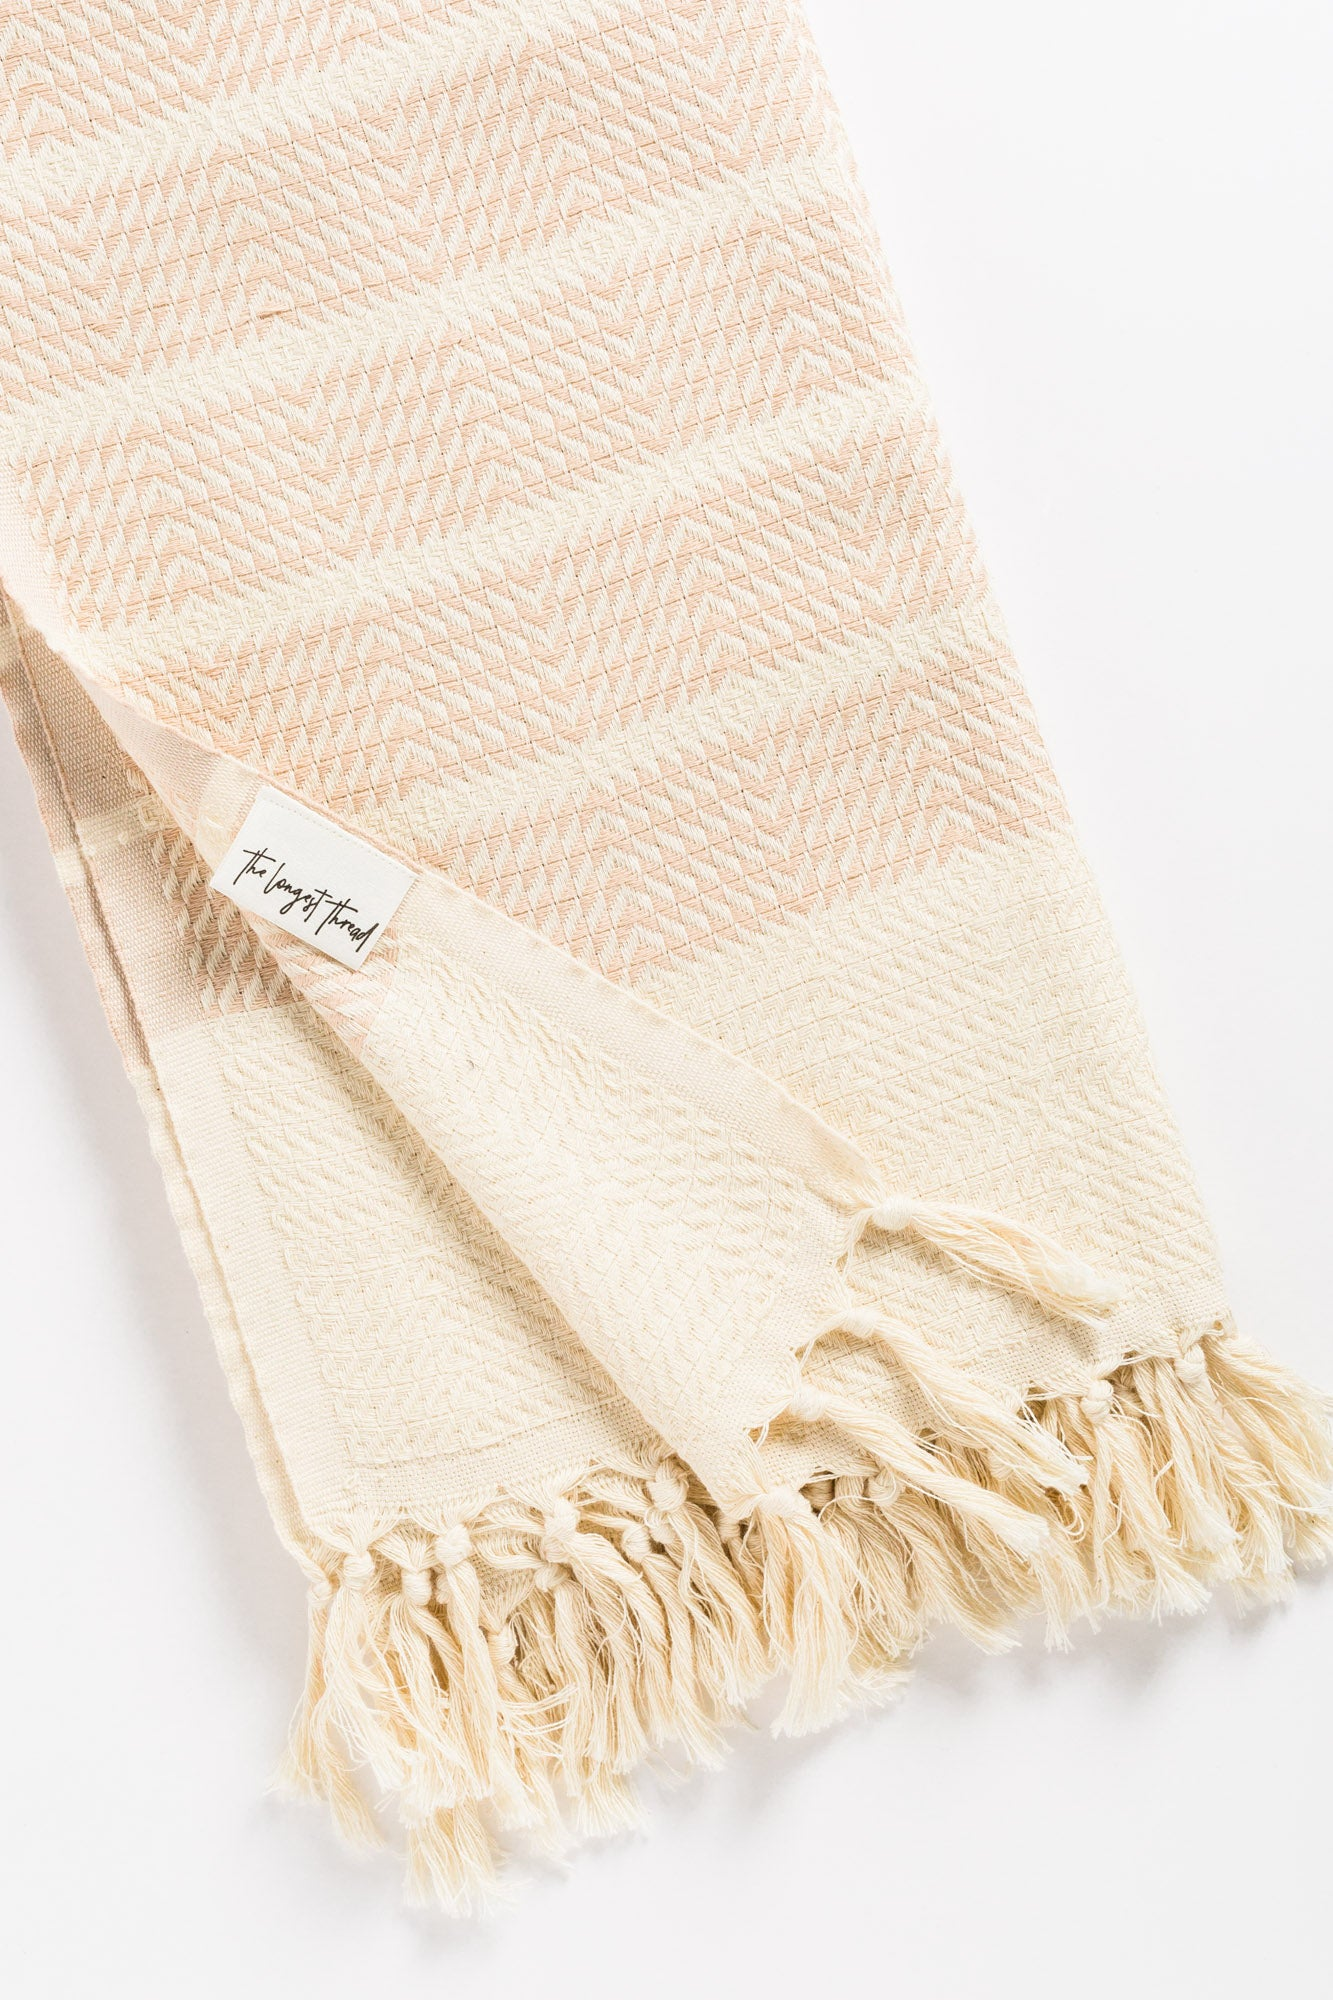 Sahara Beige Turkish Towel